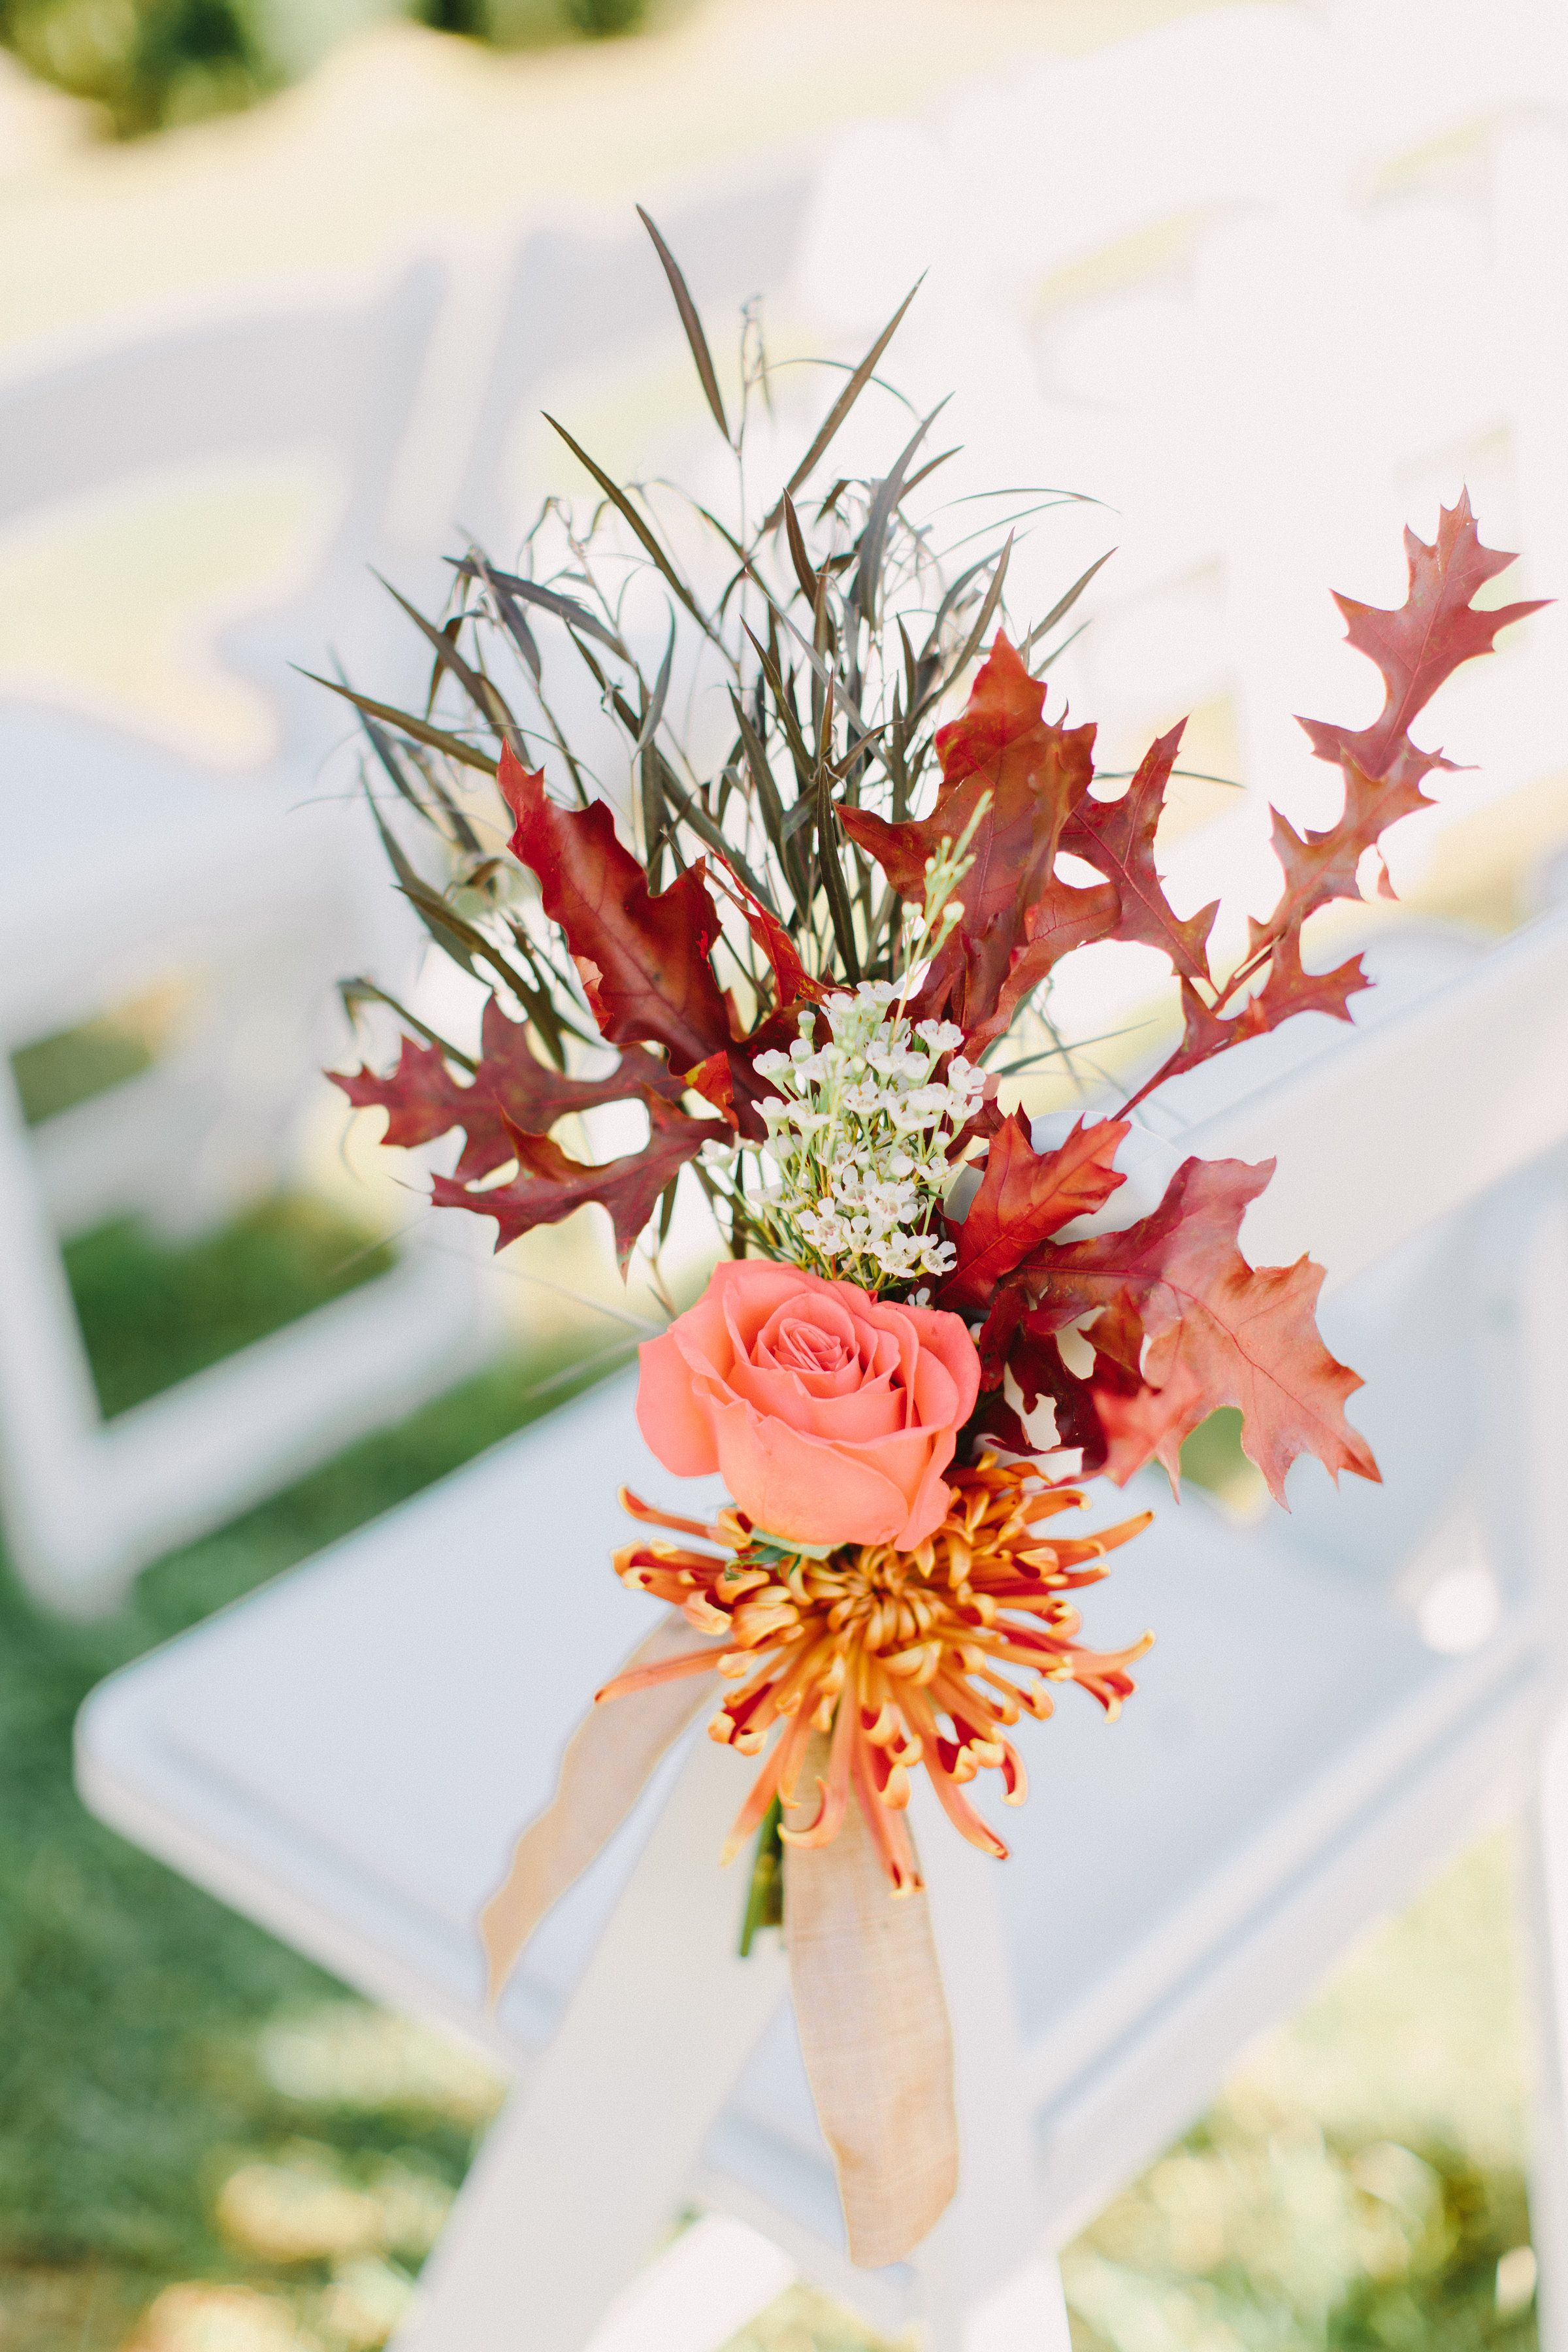 We LOVE fall weddings. The flowers, the colors, the